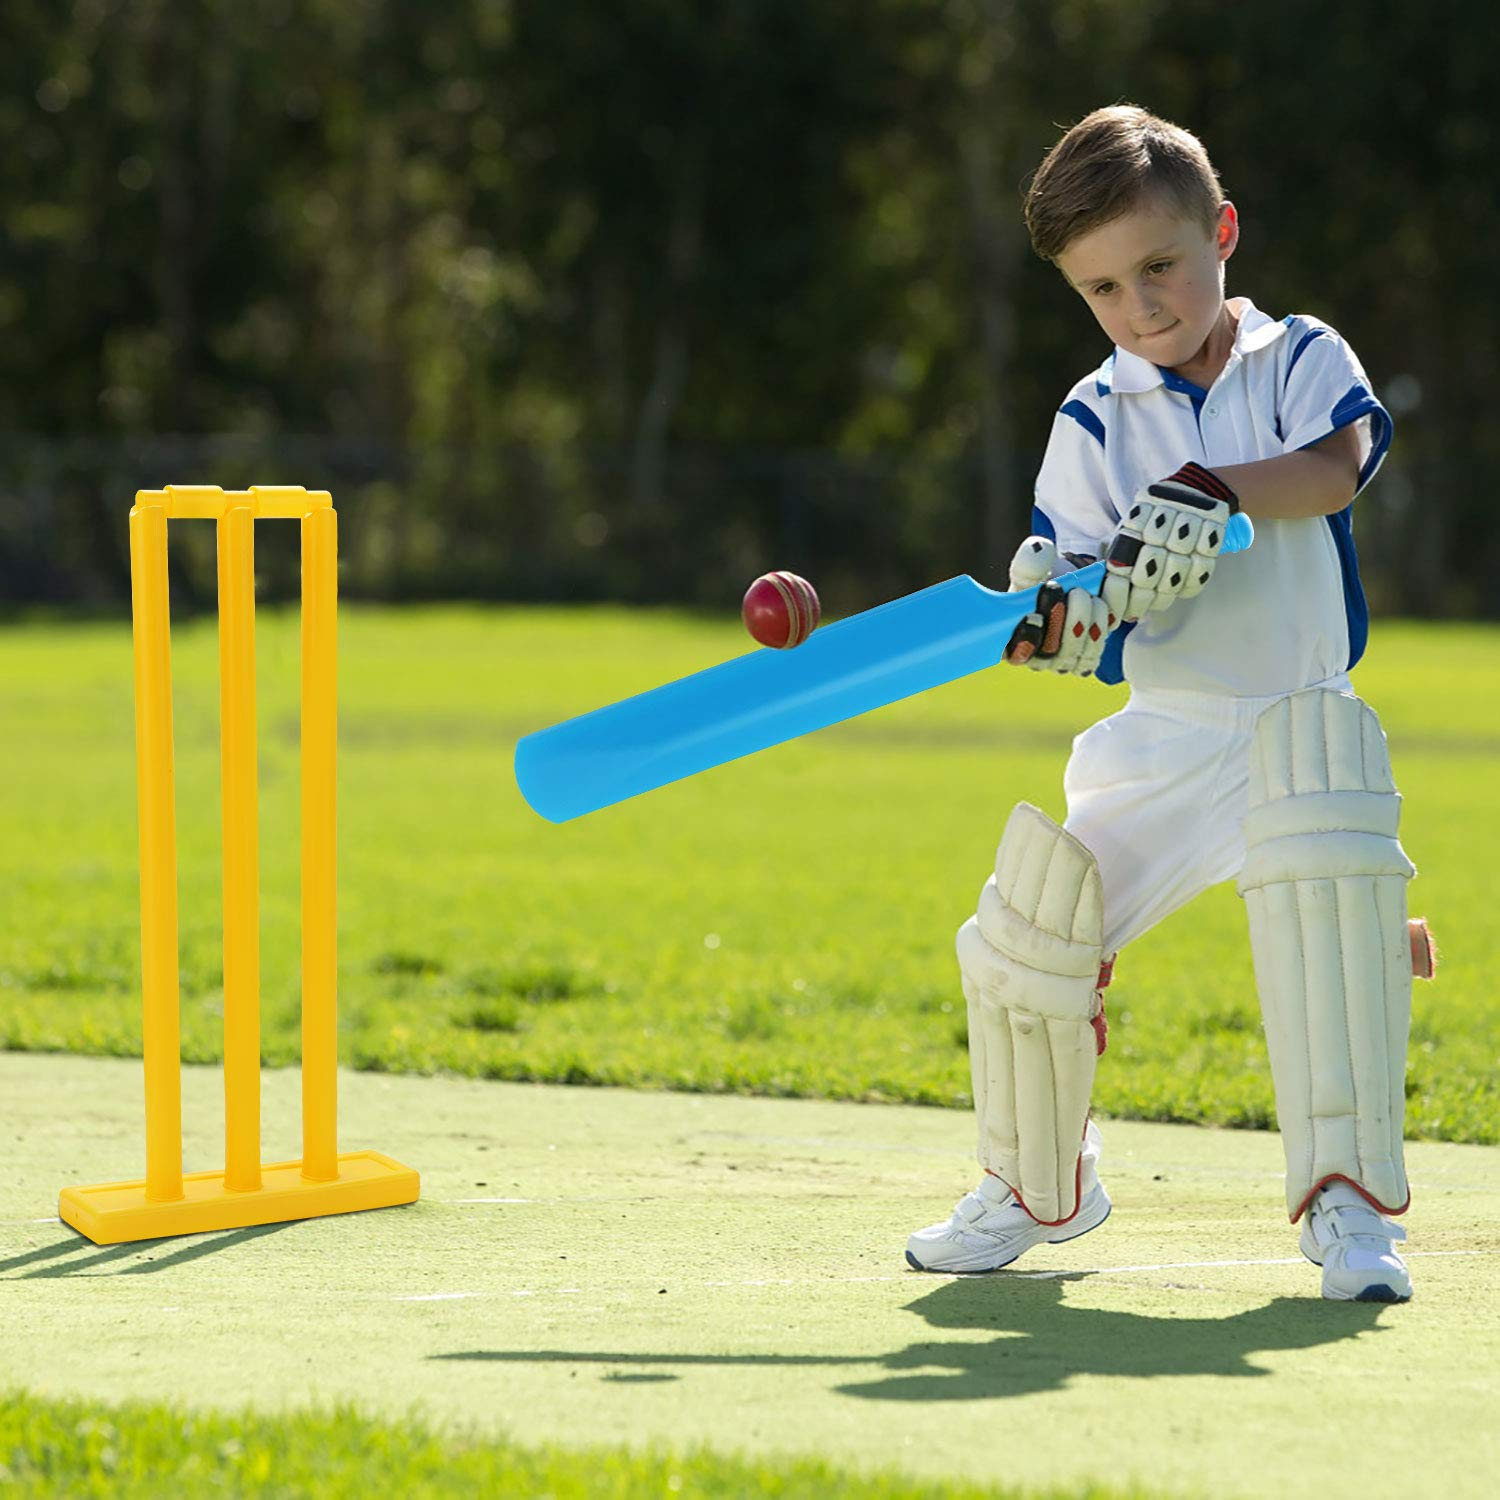 Fansport Cricket Set for Kids, Beach Cricket Equipment, Kwik Cricket, Creative Sports Game Set Ball Game Set for Backyard, NBR Rubber Water Proof Contents Bat, Ball, Stumps, Bail